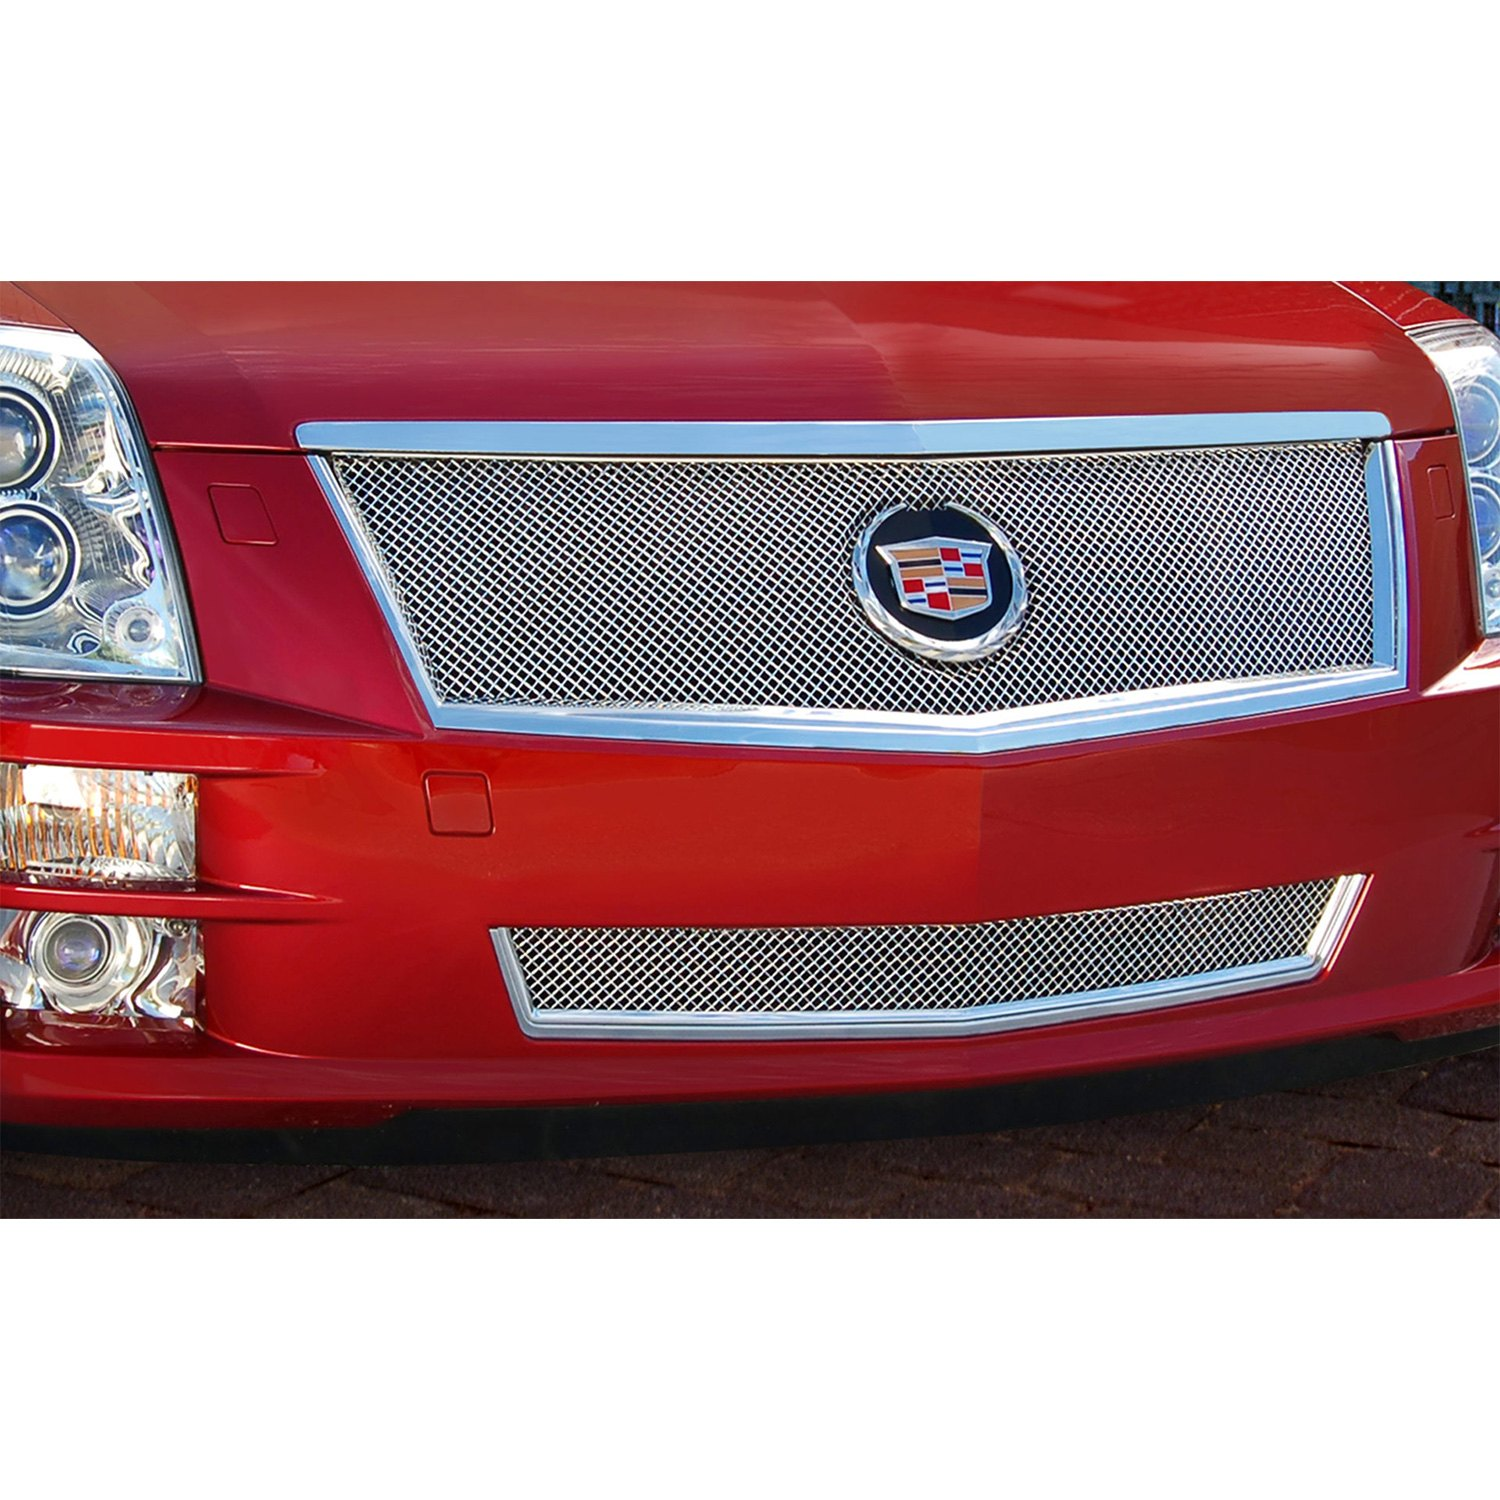 Cadillac Stsv: Cadillac STS / STS-V Without Adaptive Cruise Control 2008 2-Pc Classic Series